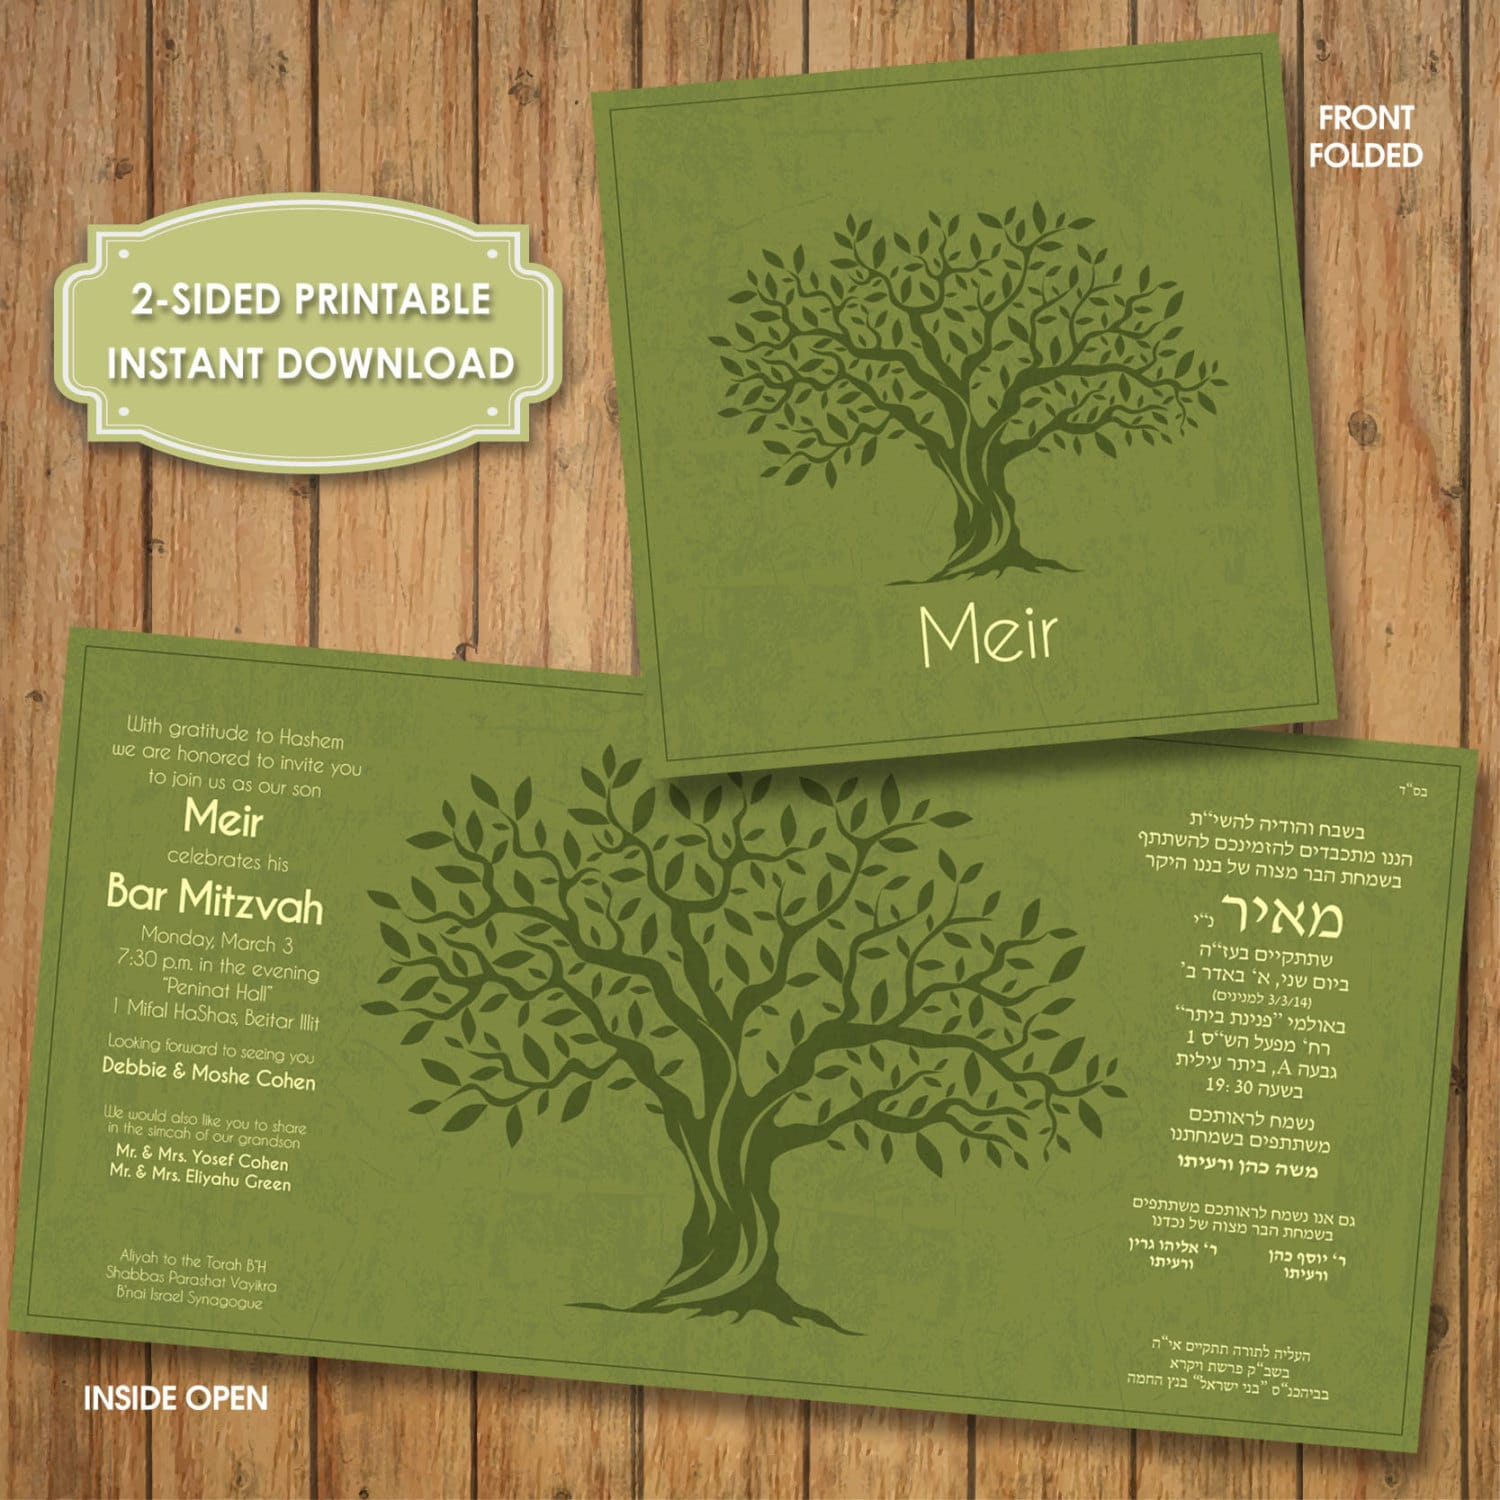 Bar Mitzvah Olive Tree Invitation - 2-Sided - Folded - 4.75